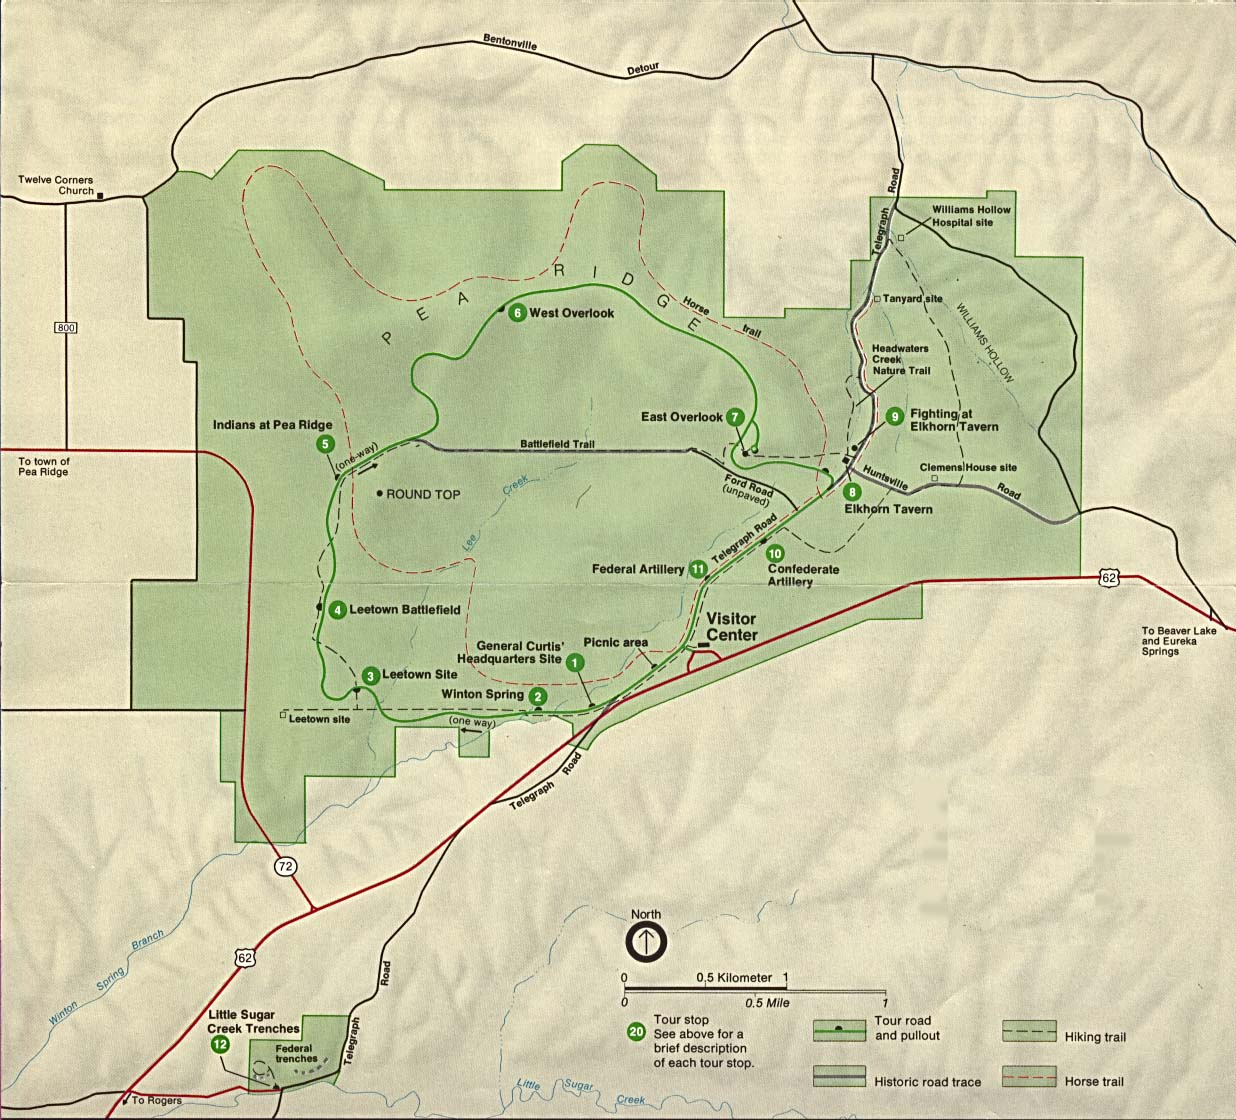 Maps of United States National Parks, Monuments and Historic Sites Pea Ridge National Military Park [Arkansas] (Park Map) (223K)